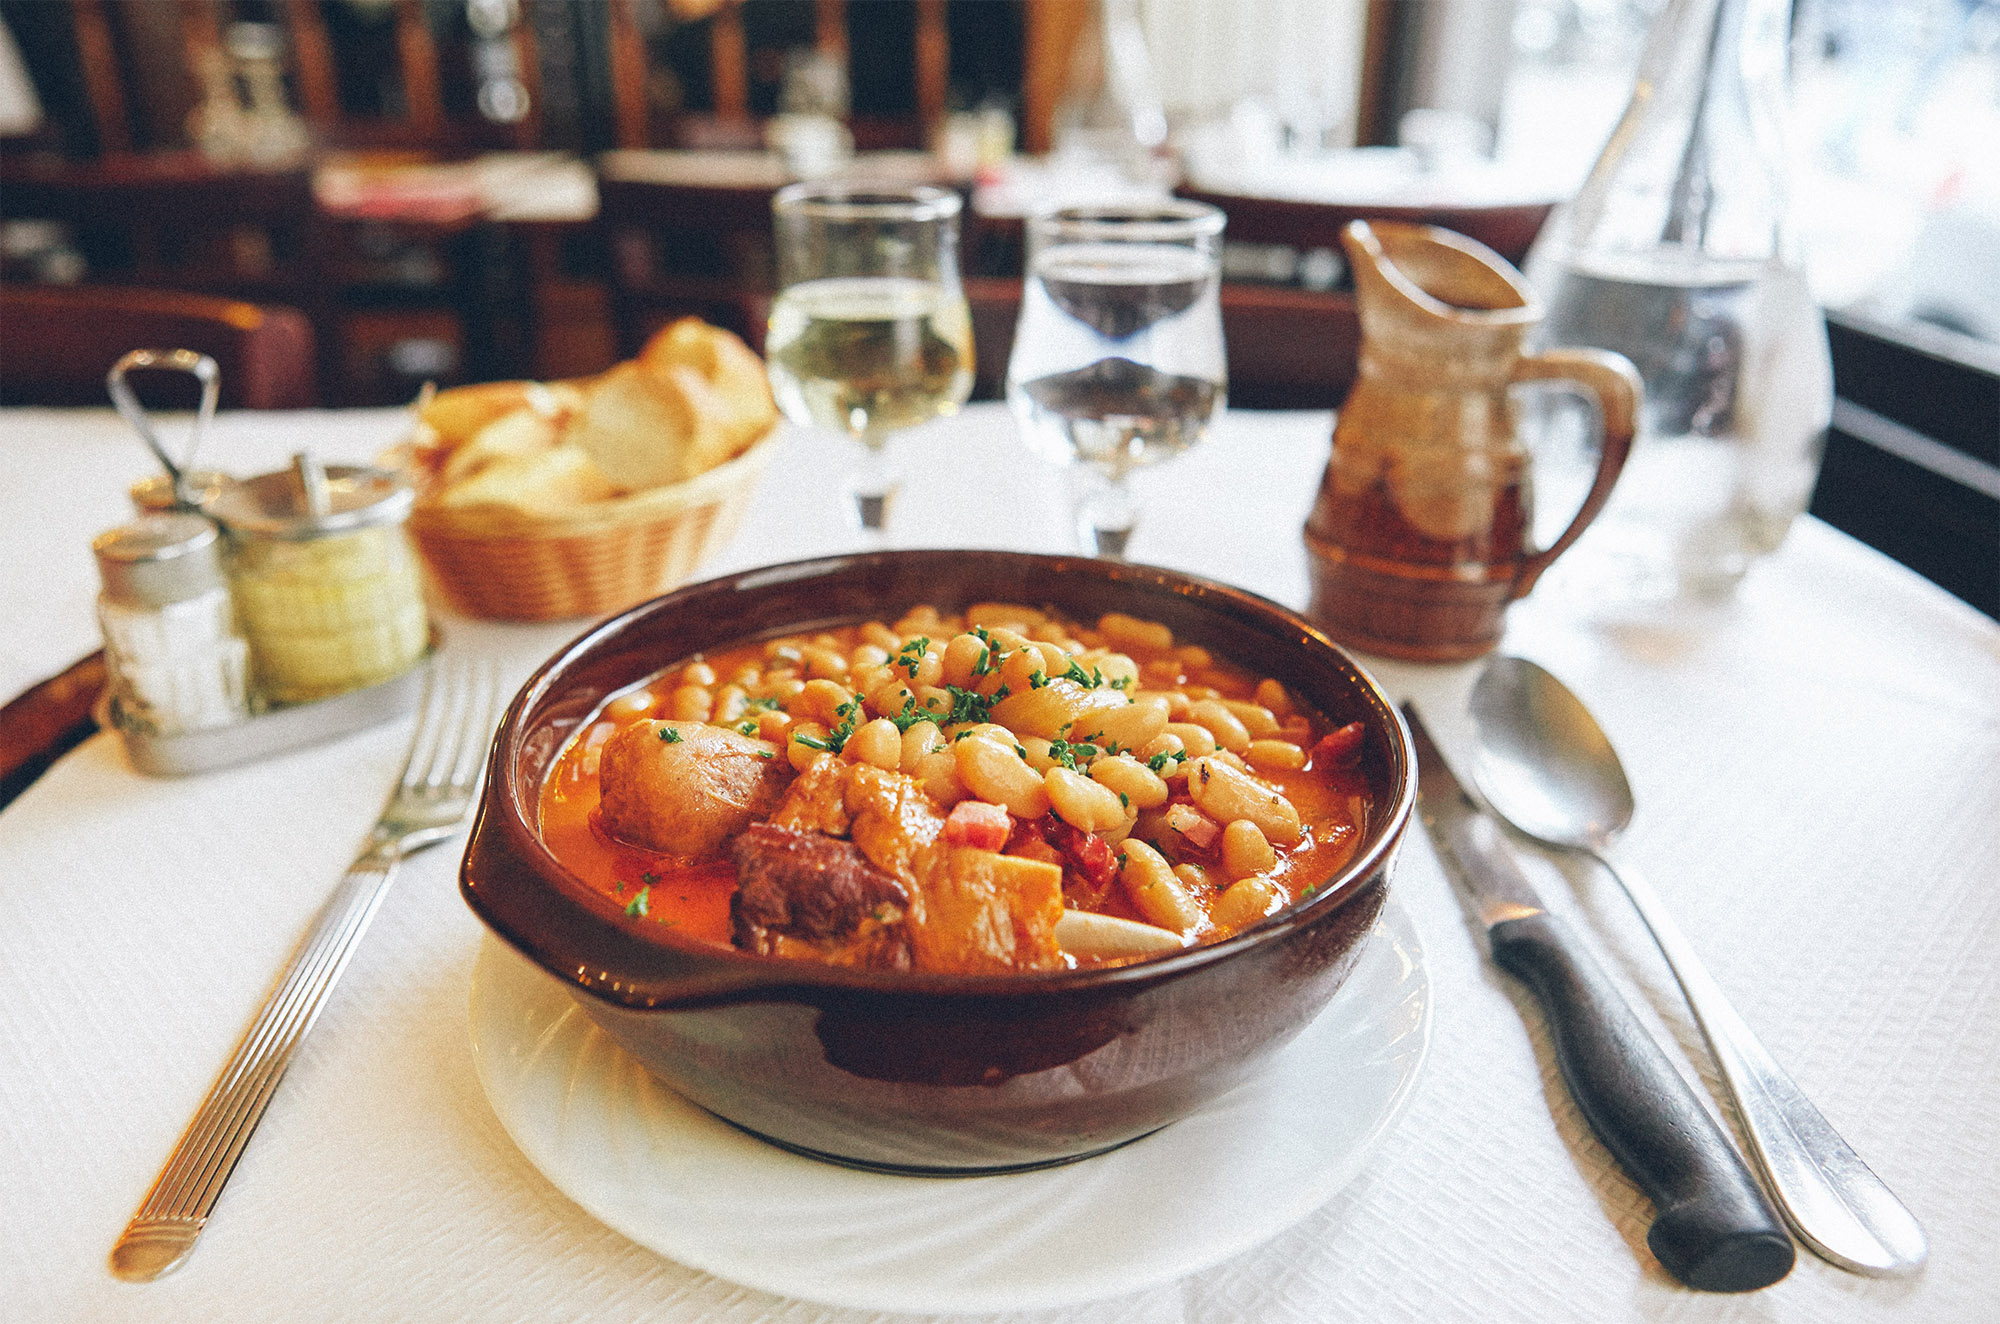 Sooooo hungry for cassoulet now. Field trip to Toulouse, anyone?